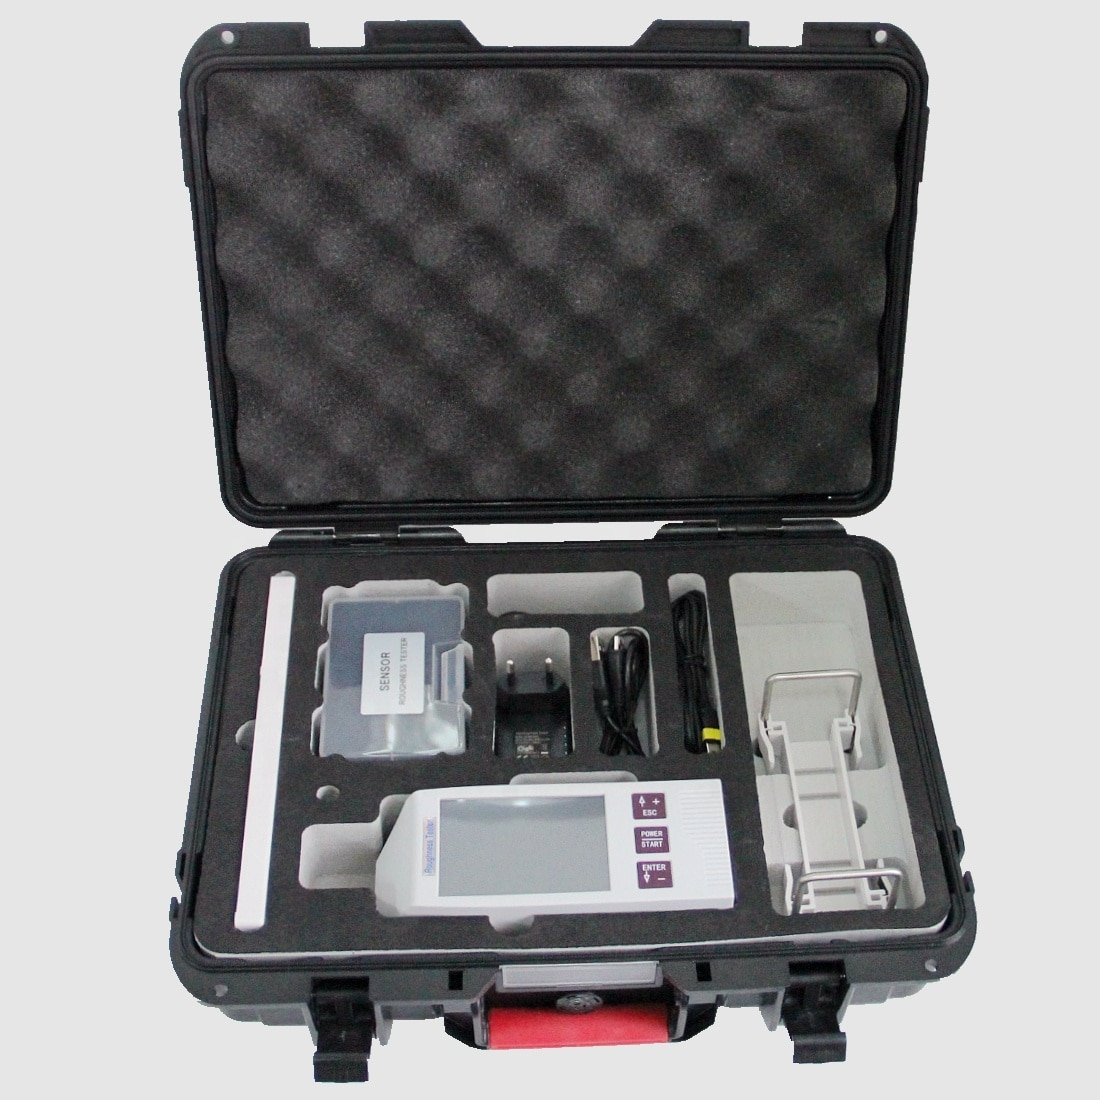 Surface Roughness Tester digital HUATEC NEW SRT-6680 Portable flatness tester with 22 parameters enlarge